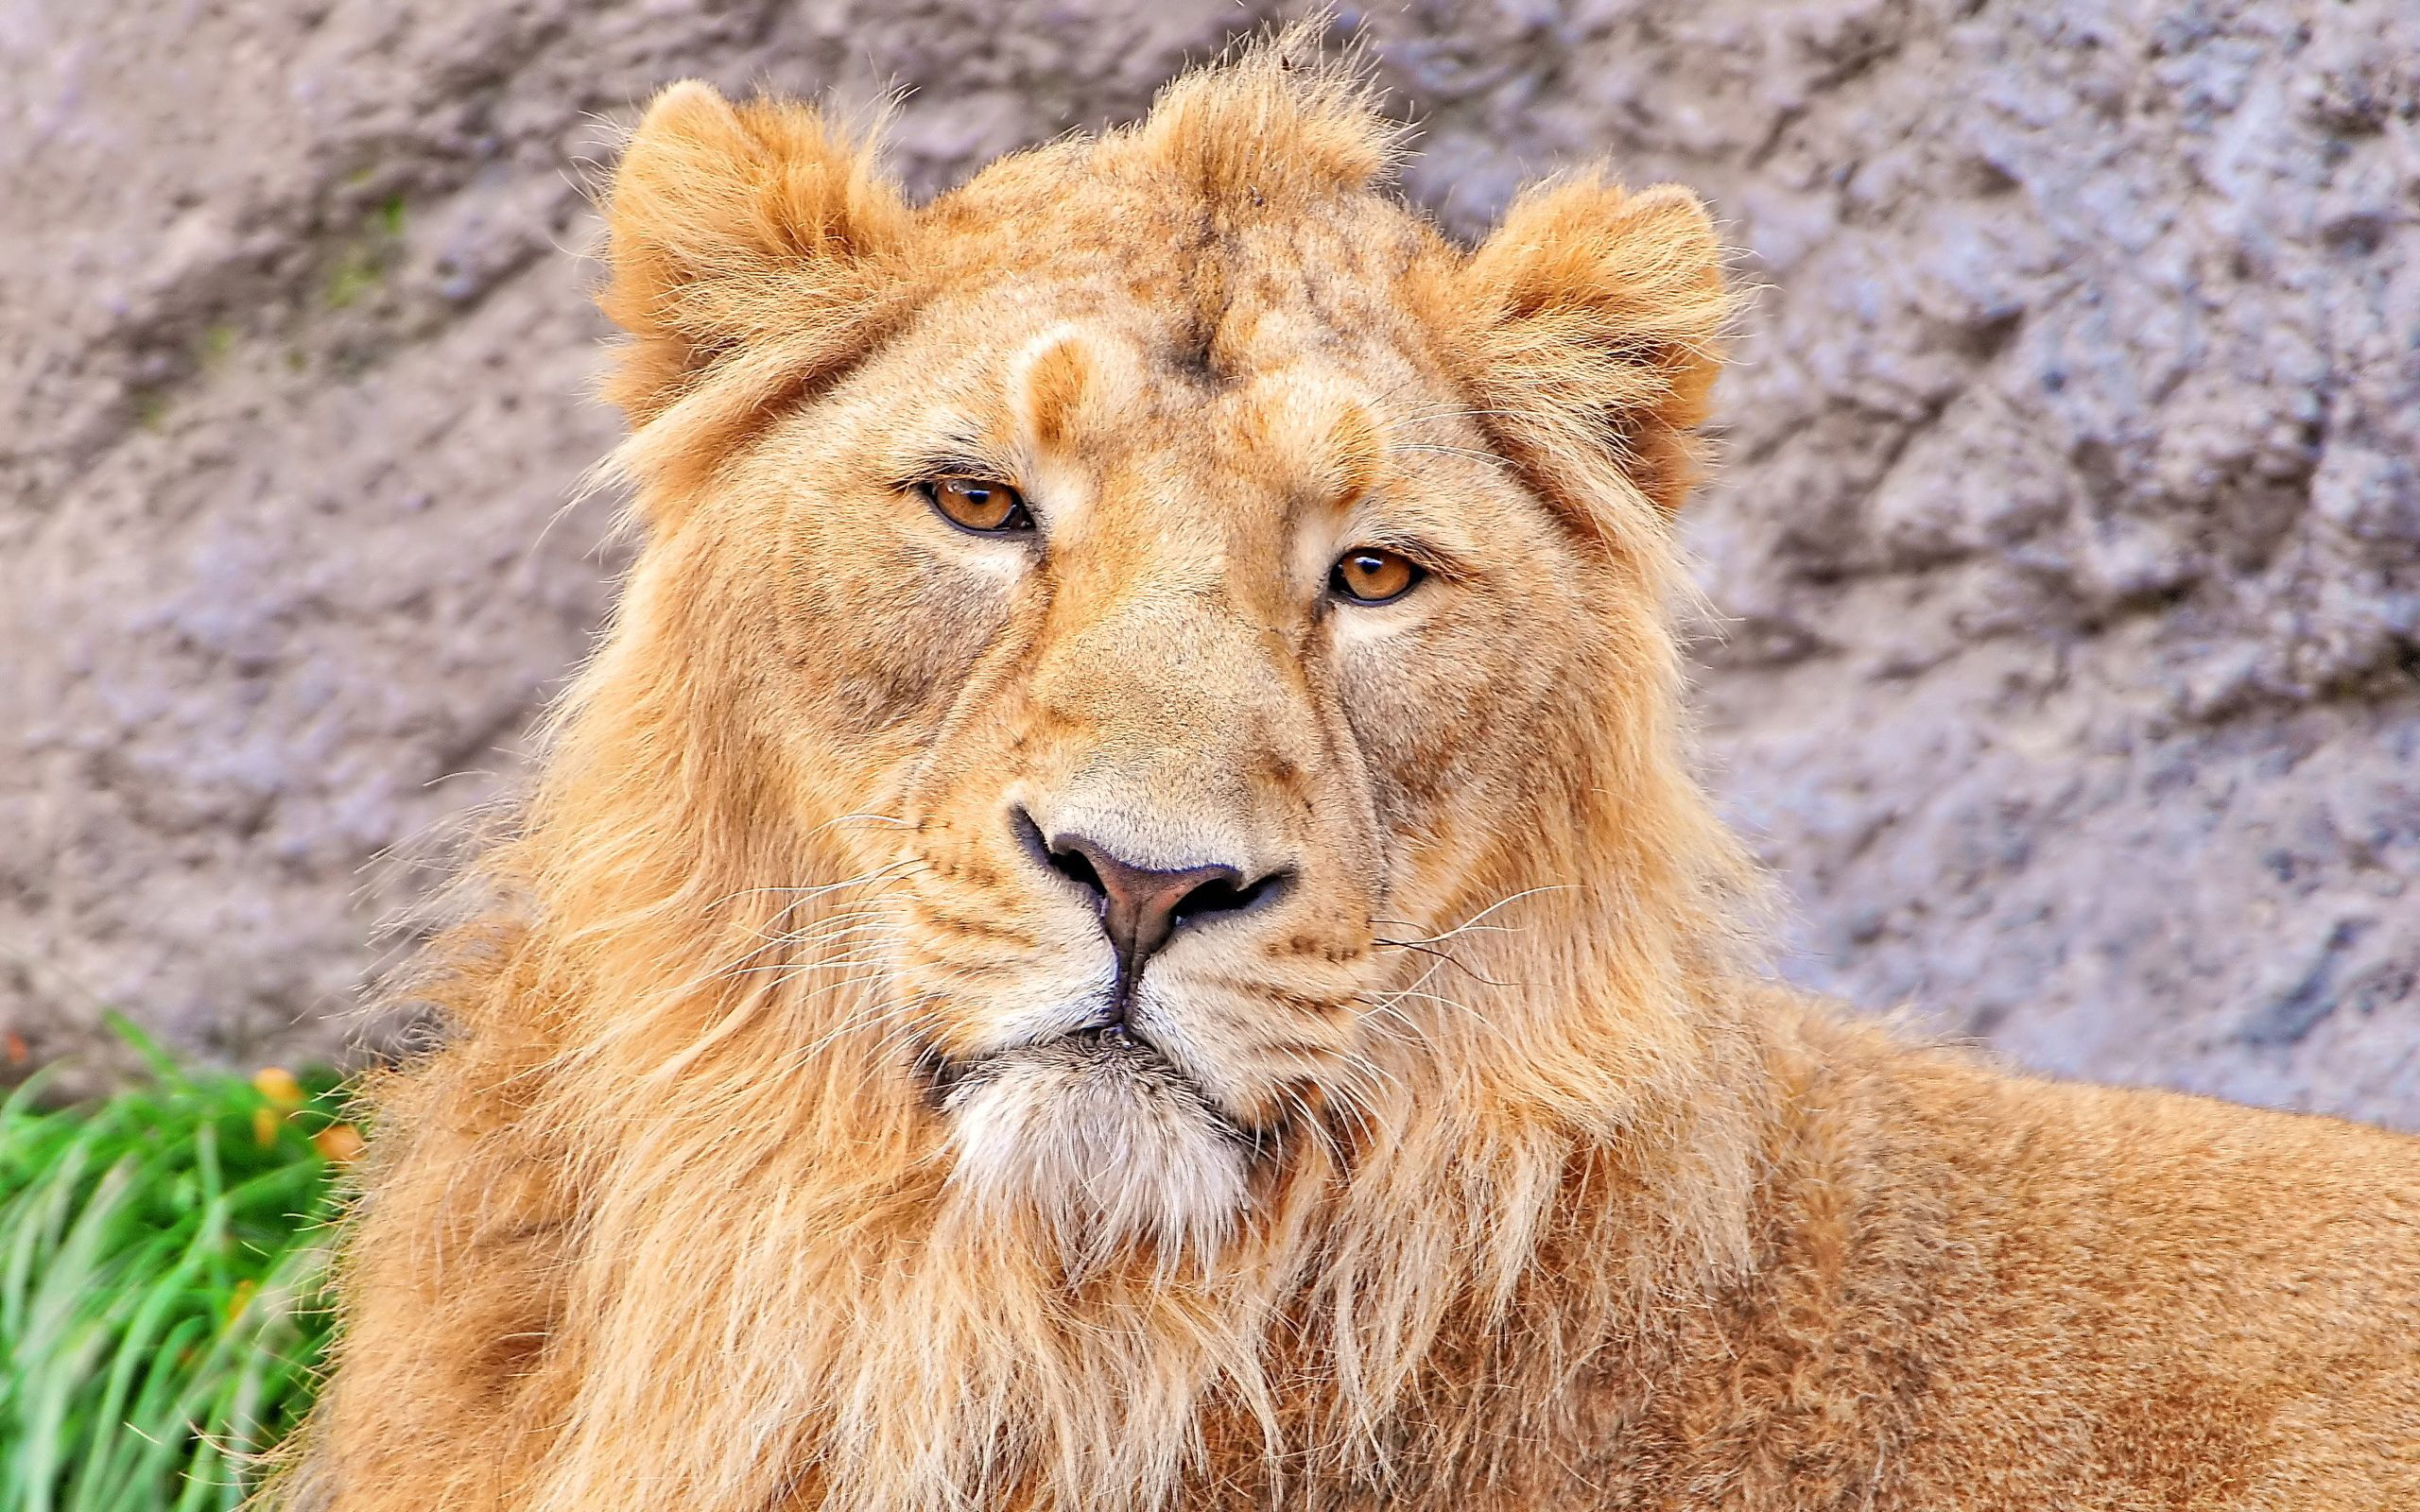 134523 download wallpaper Animals, Lion, Muzzle, Wool, Predator screensavers and pictures for free